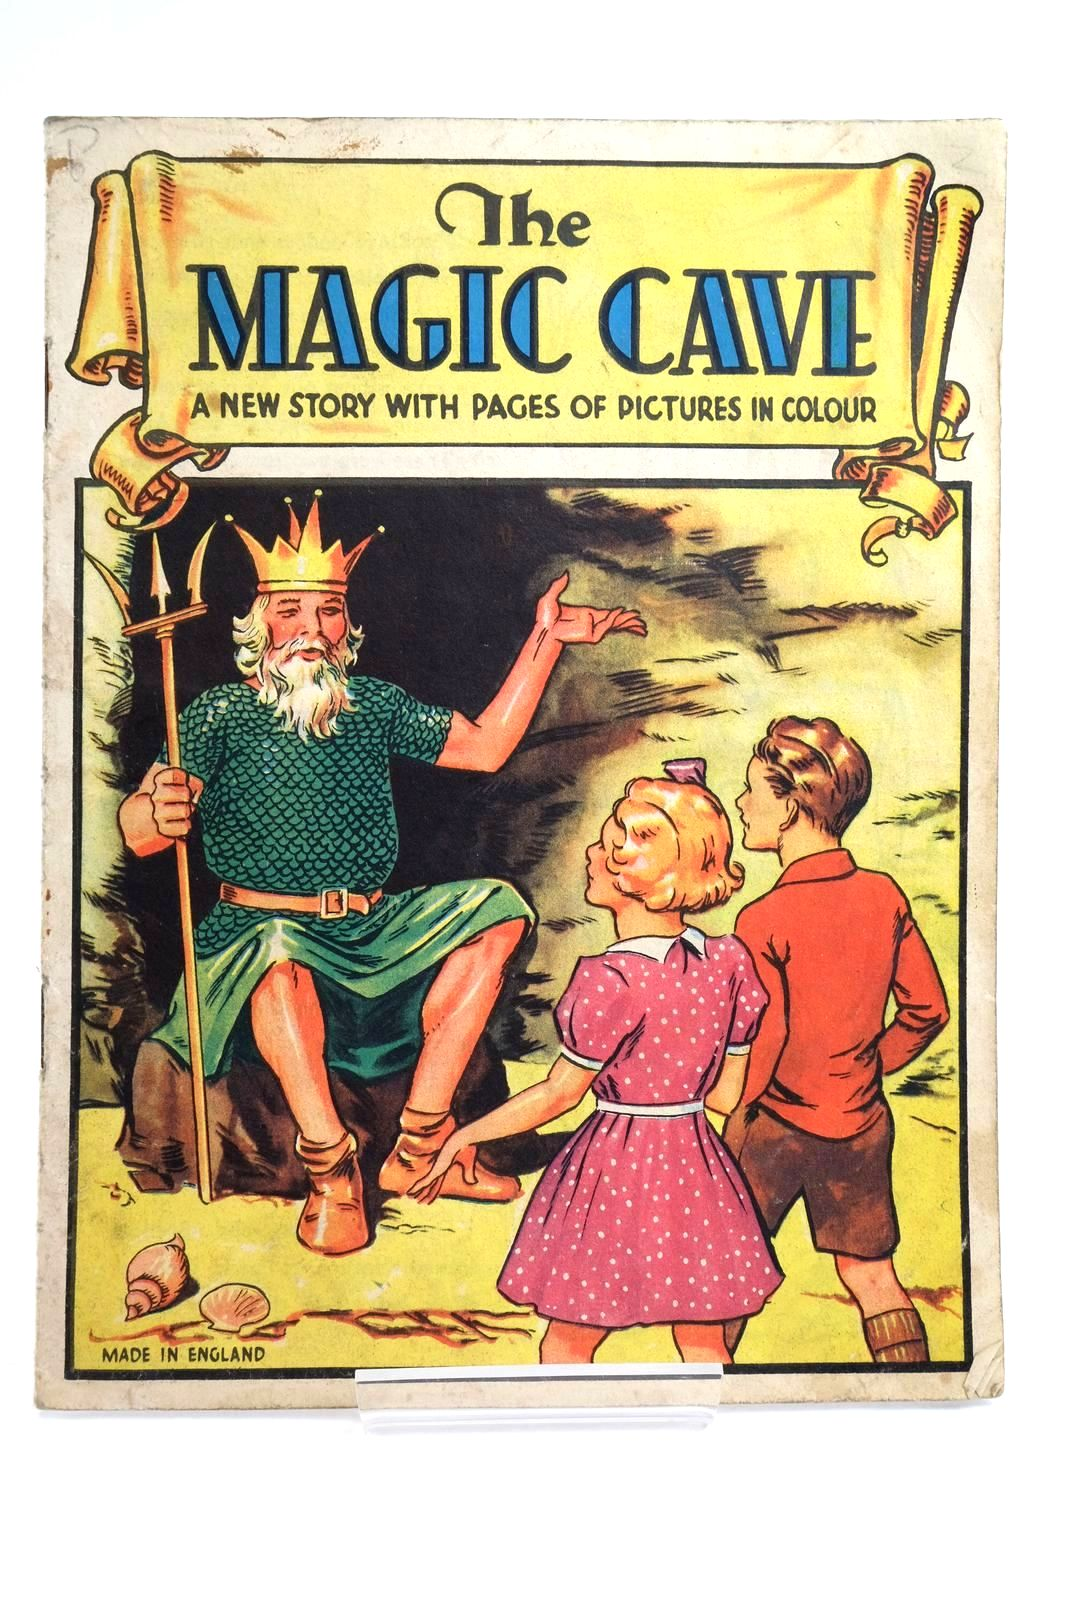 Photo of THE MAGIC CAVE written by The Jolly Tar, published by Strome & Co. (STOCK CODE: 1321696)  for sale by Stella & Rose's Books